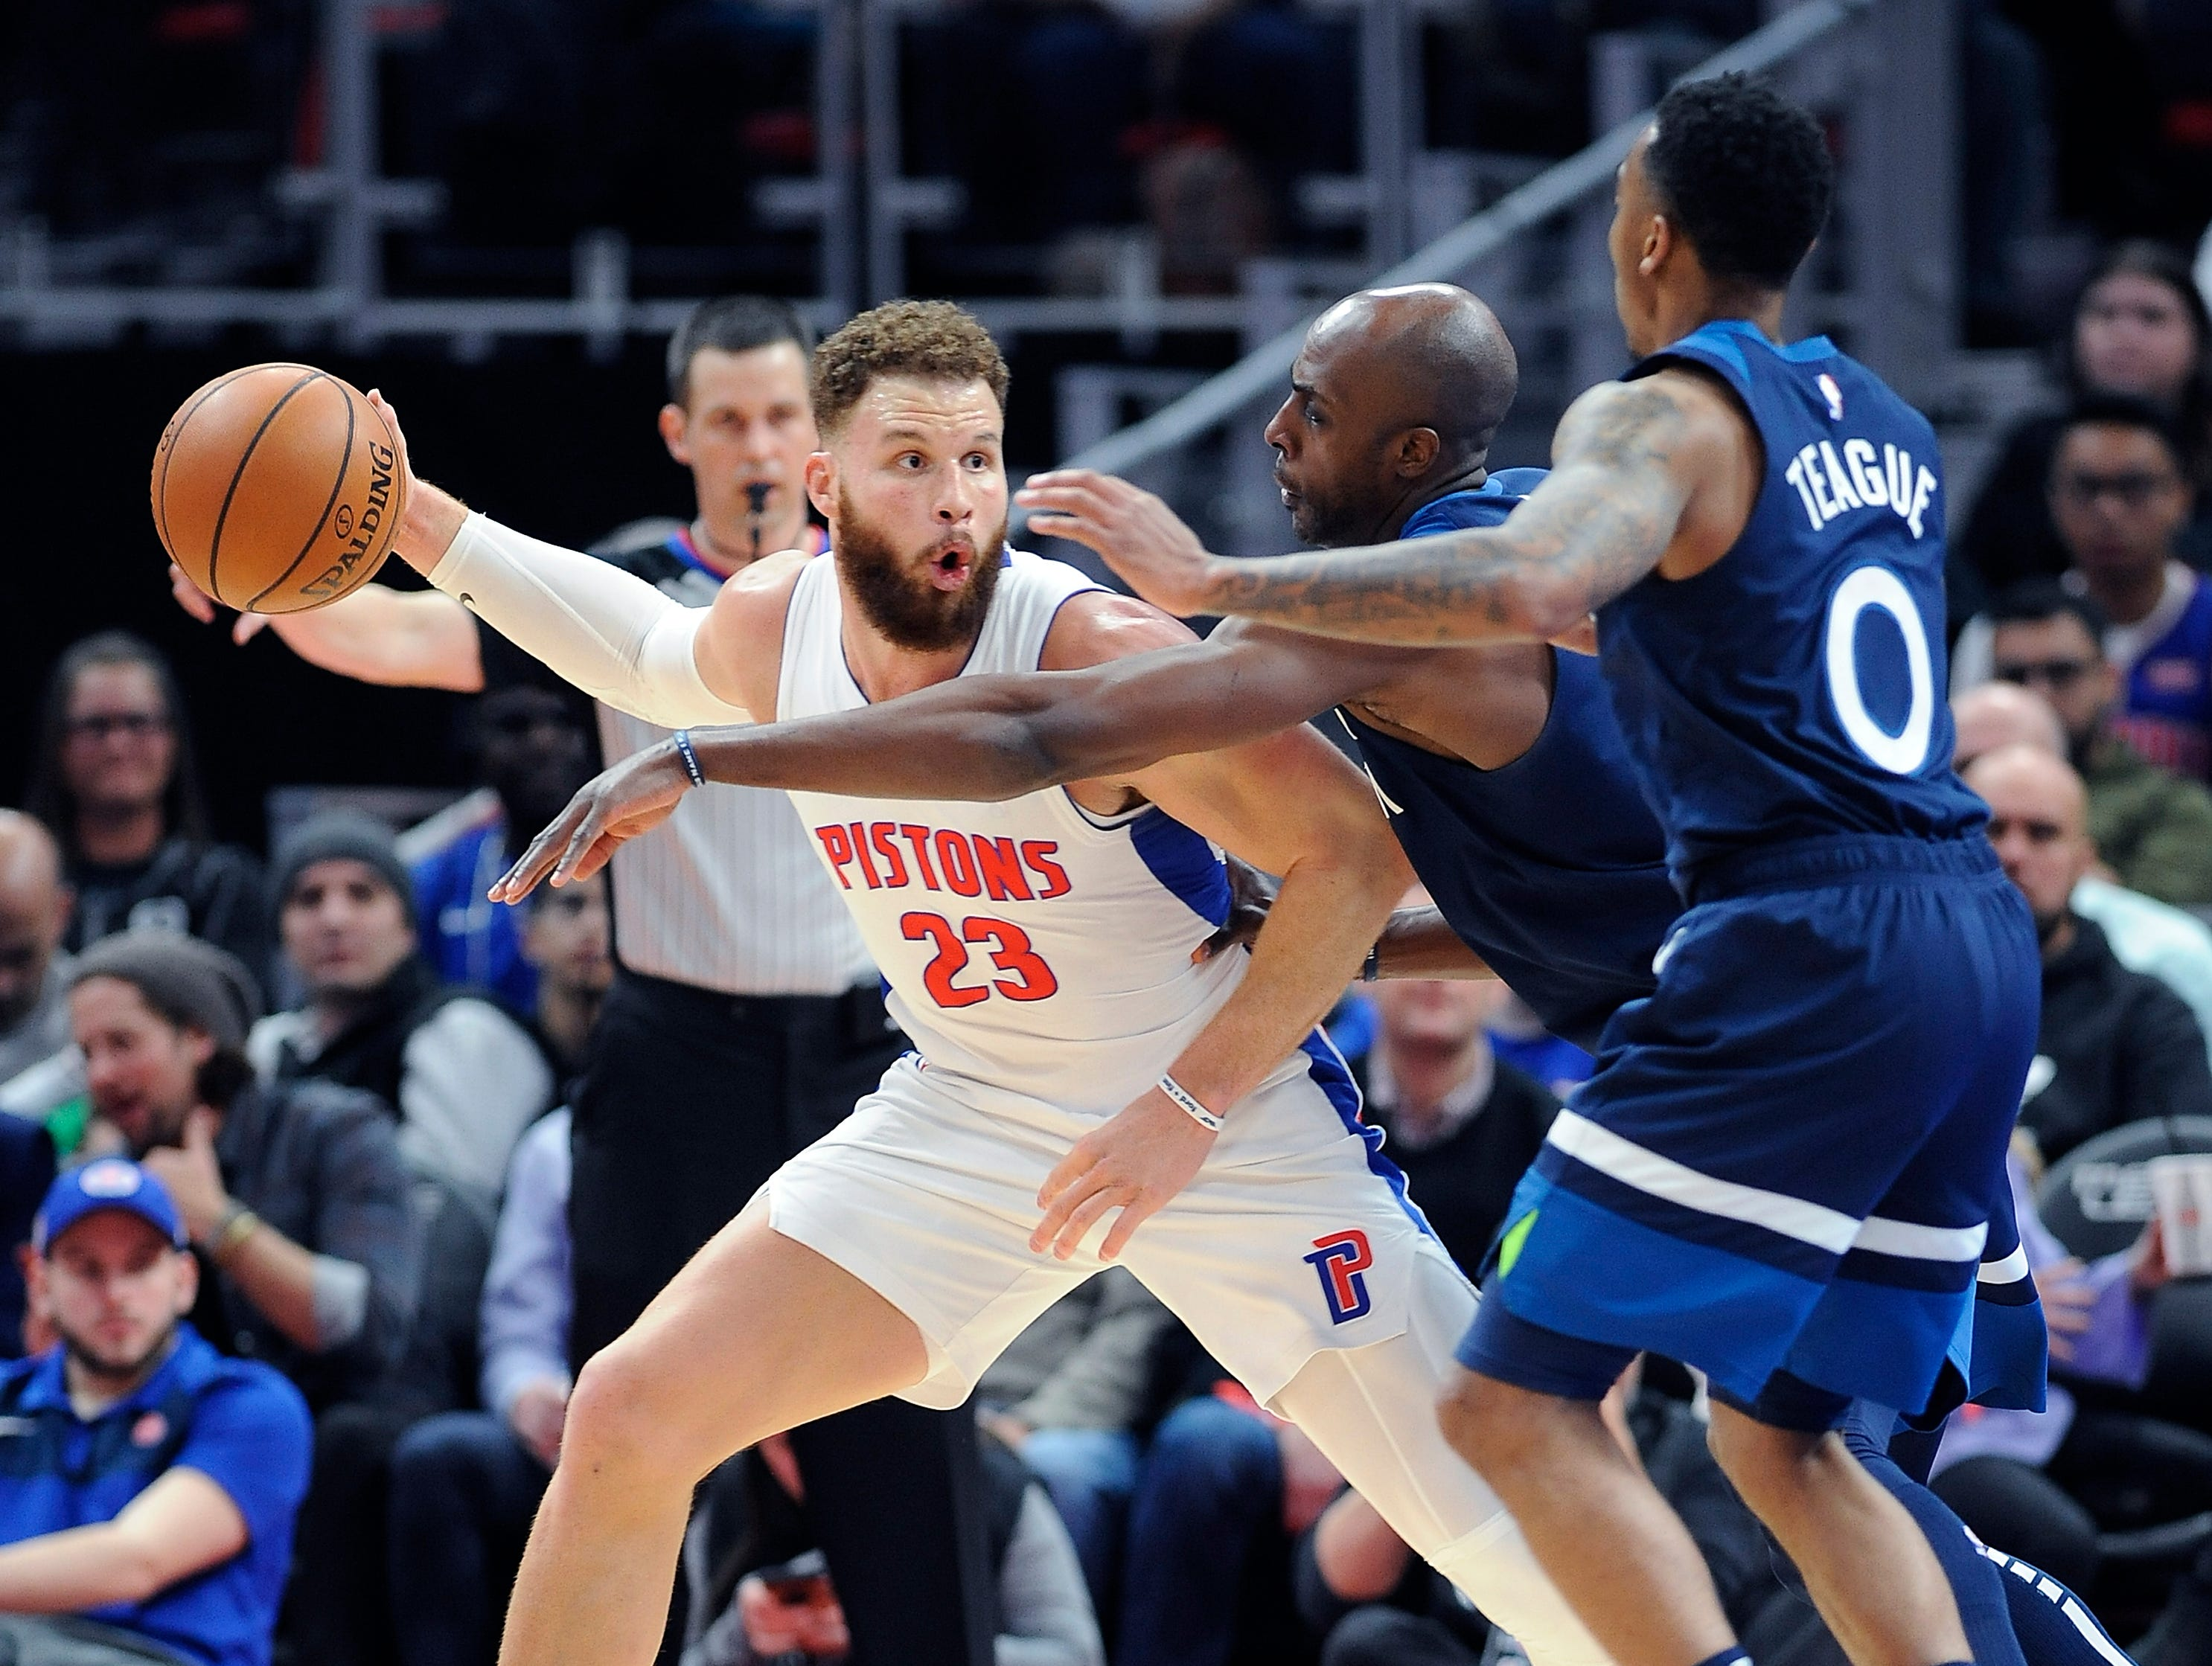 Pistons' Blake Griffin looks for room around Timberwolves' l-r, Anthony Tolliver and Jeff Teague in the fourth quarter.